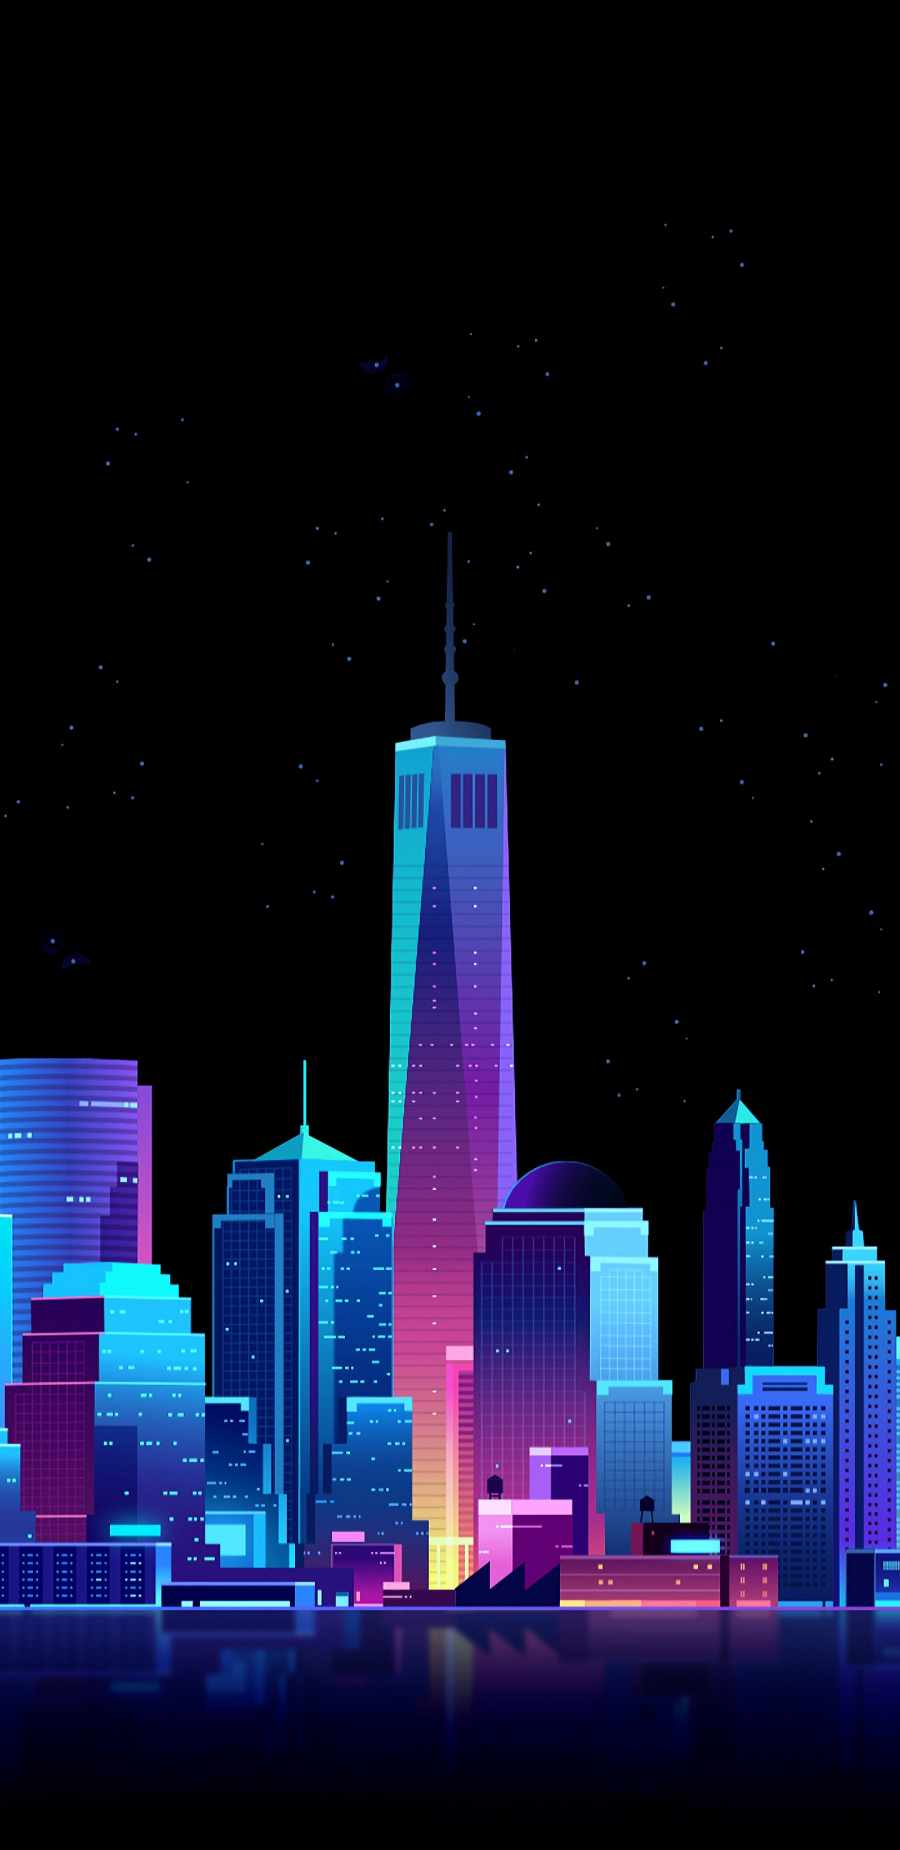 Amoled City iPhone Wallpaper